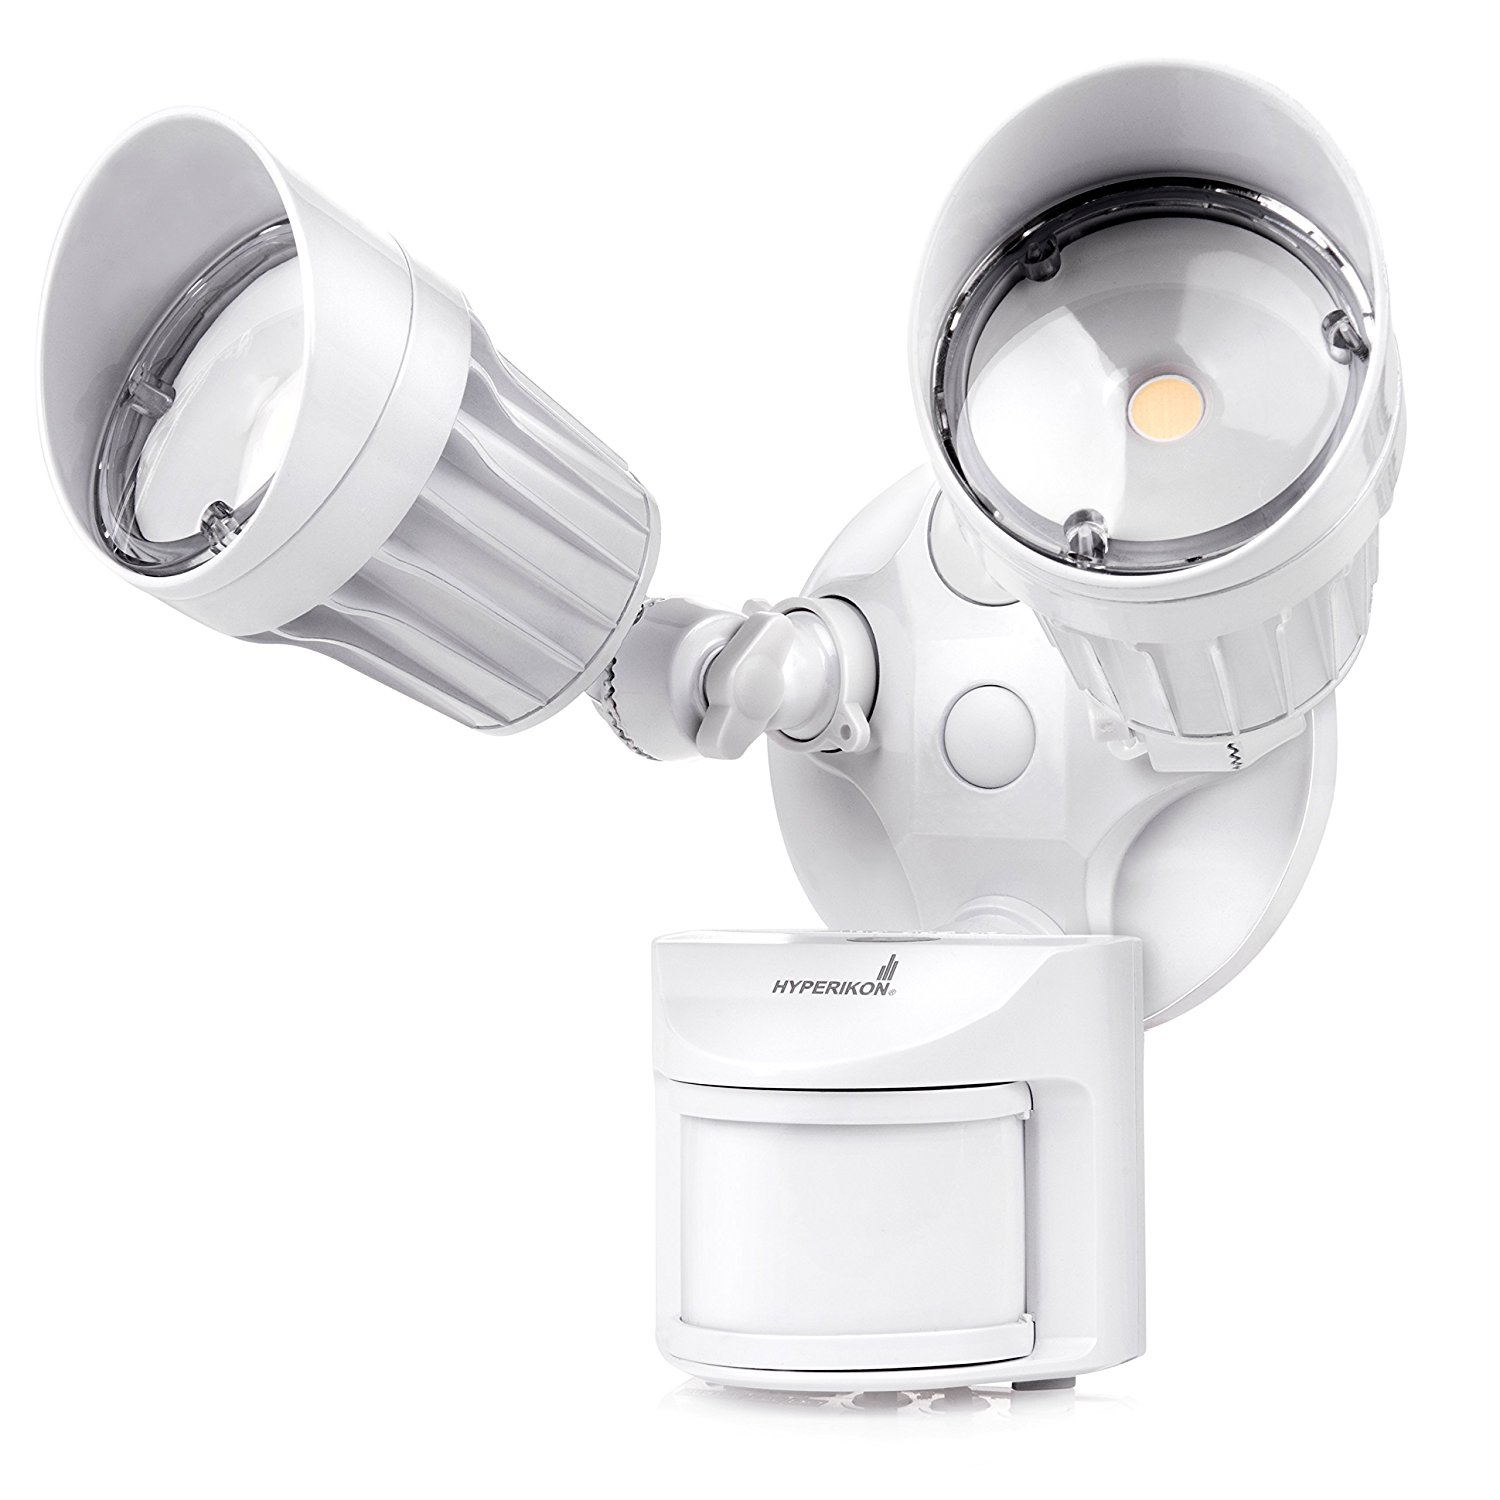 Outdoor home security lights to deter thieves outdoor home security lights motion sensor mozeypictures Images